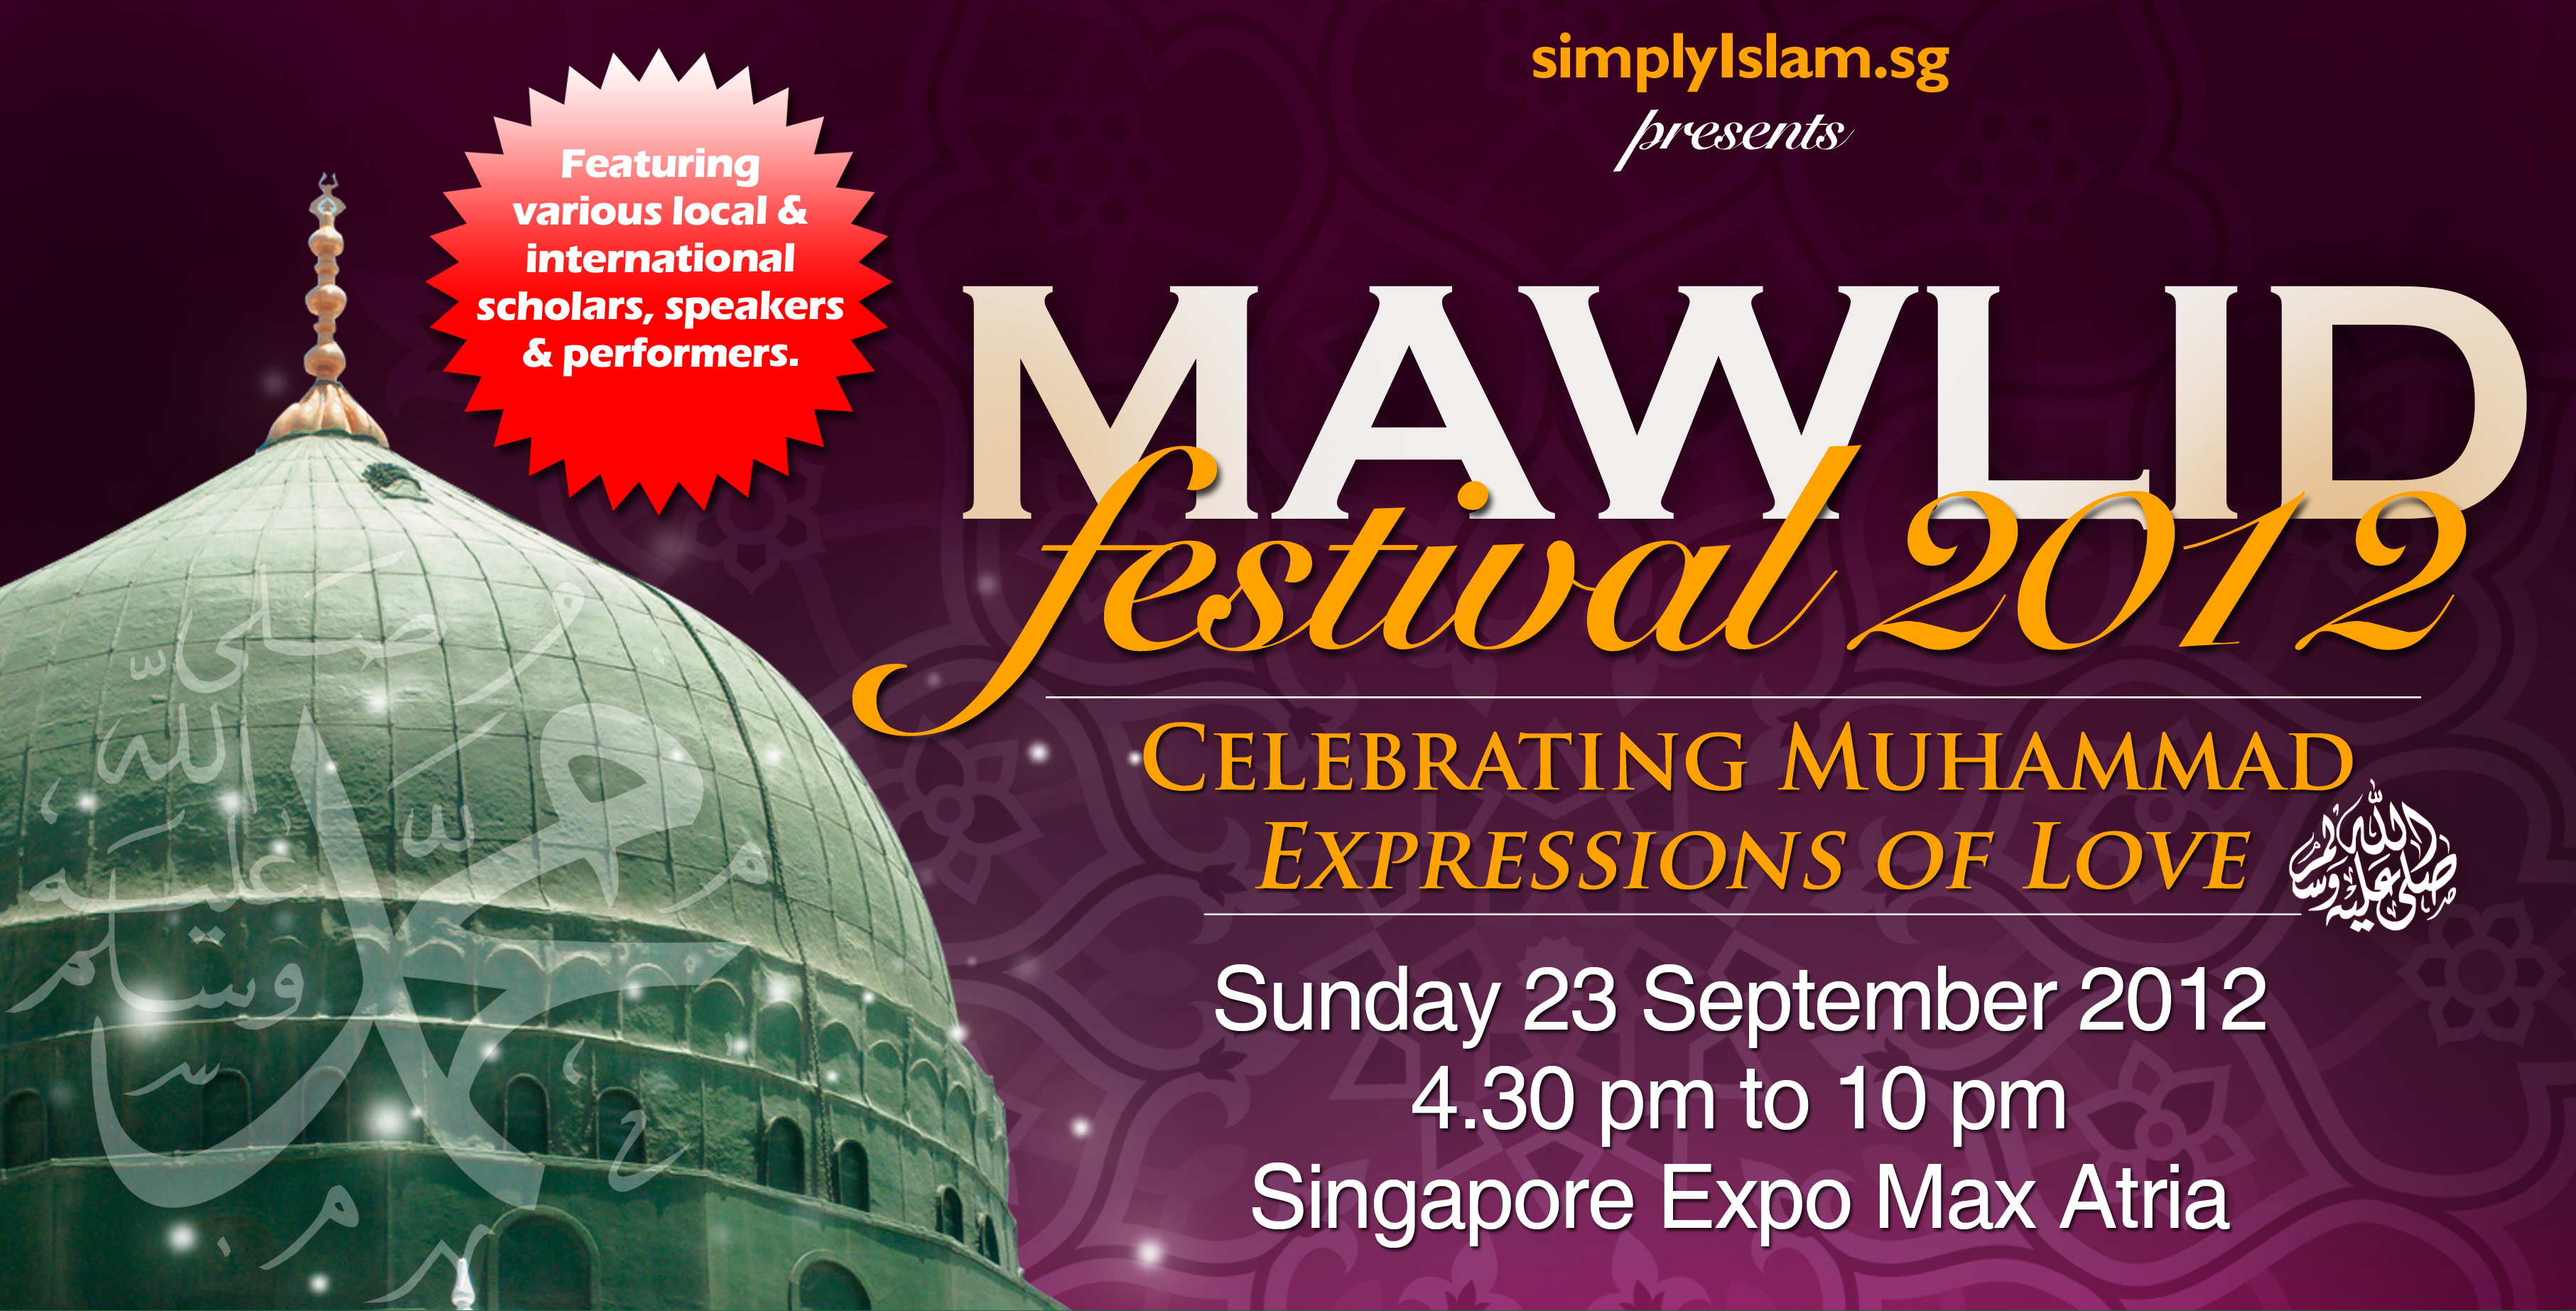 Event review: Mawlid Festival 2012 (4 – 7 pm)